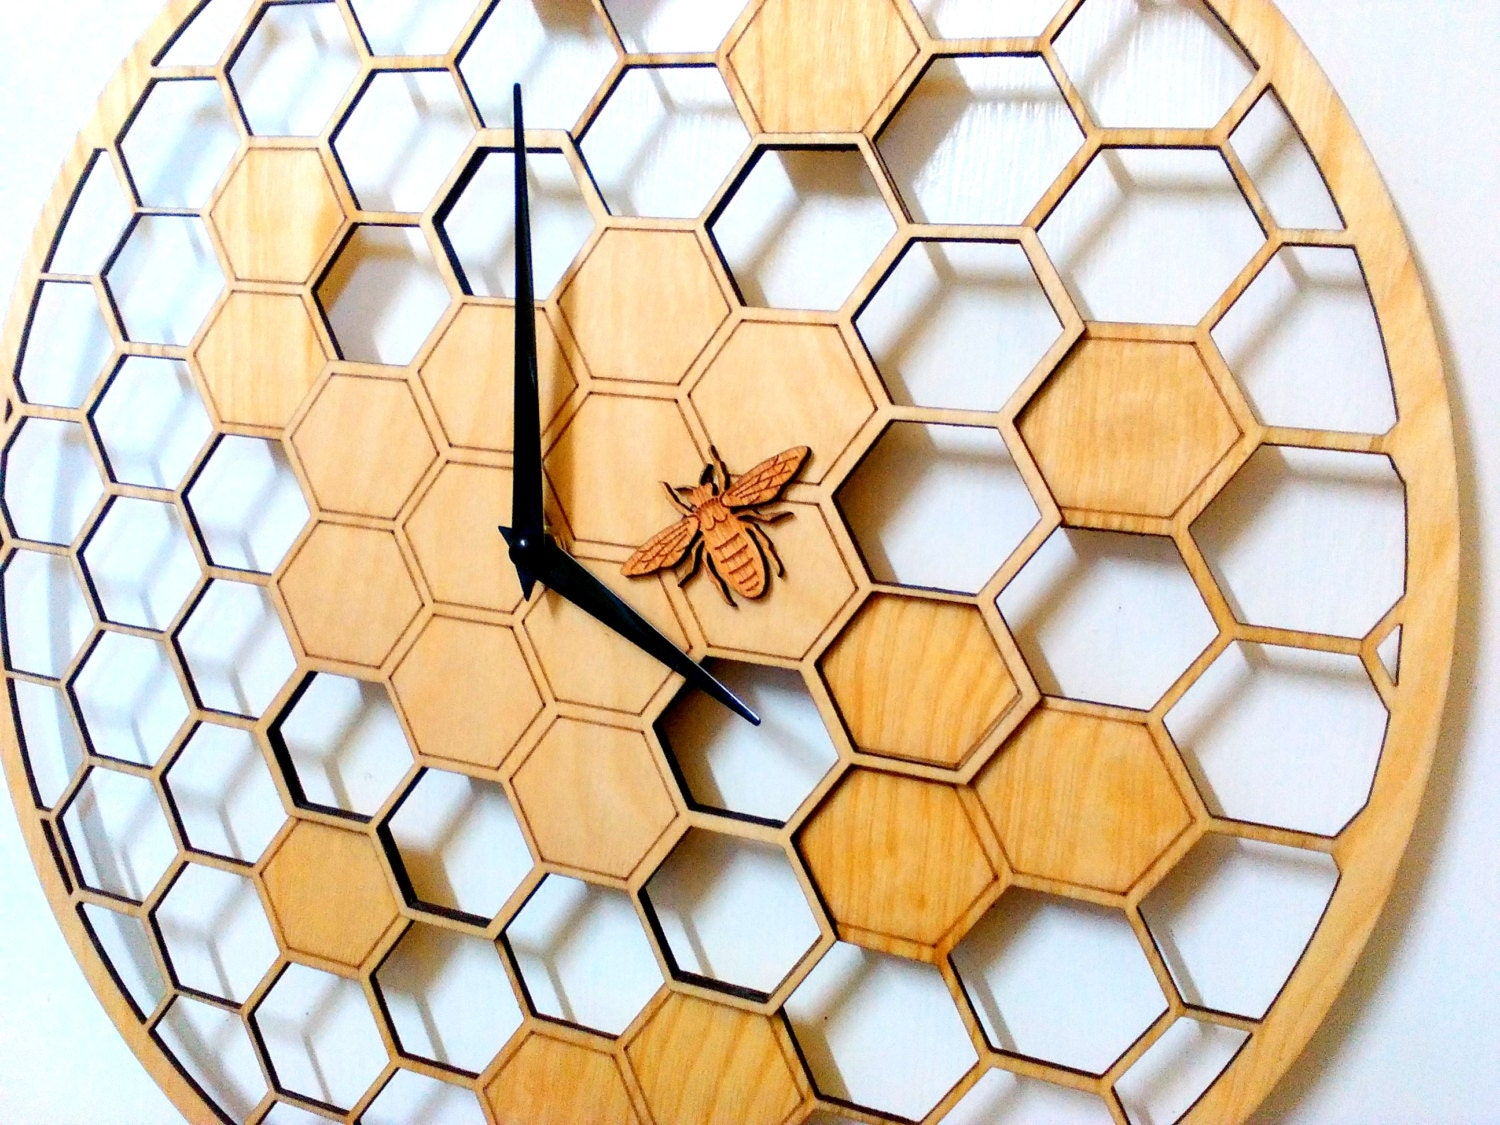 Bee Cells Laser cut WALL CLOCK 15.7 Diameter Large | Etsy